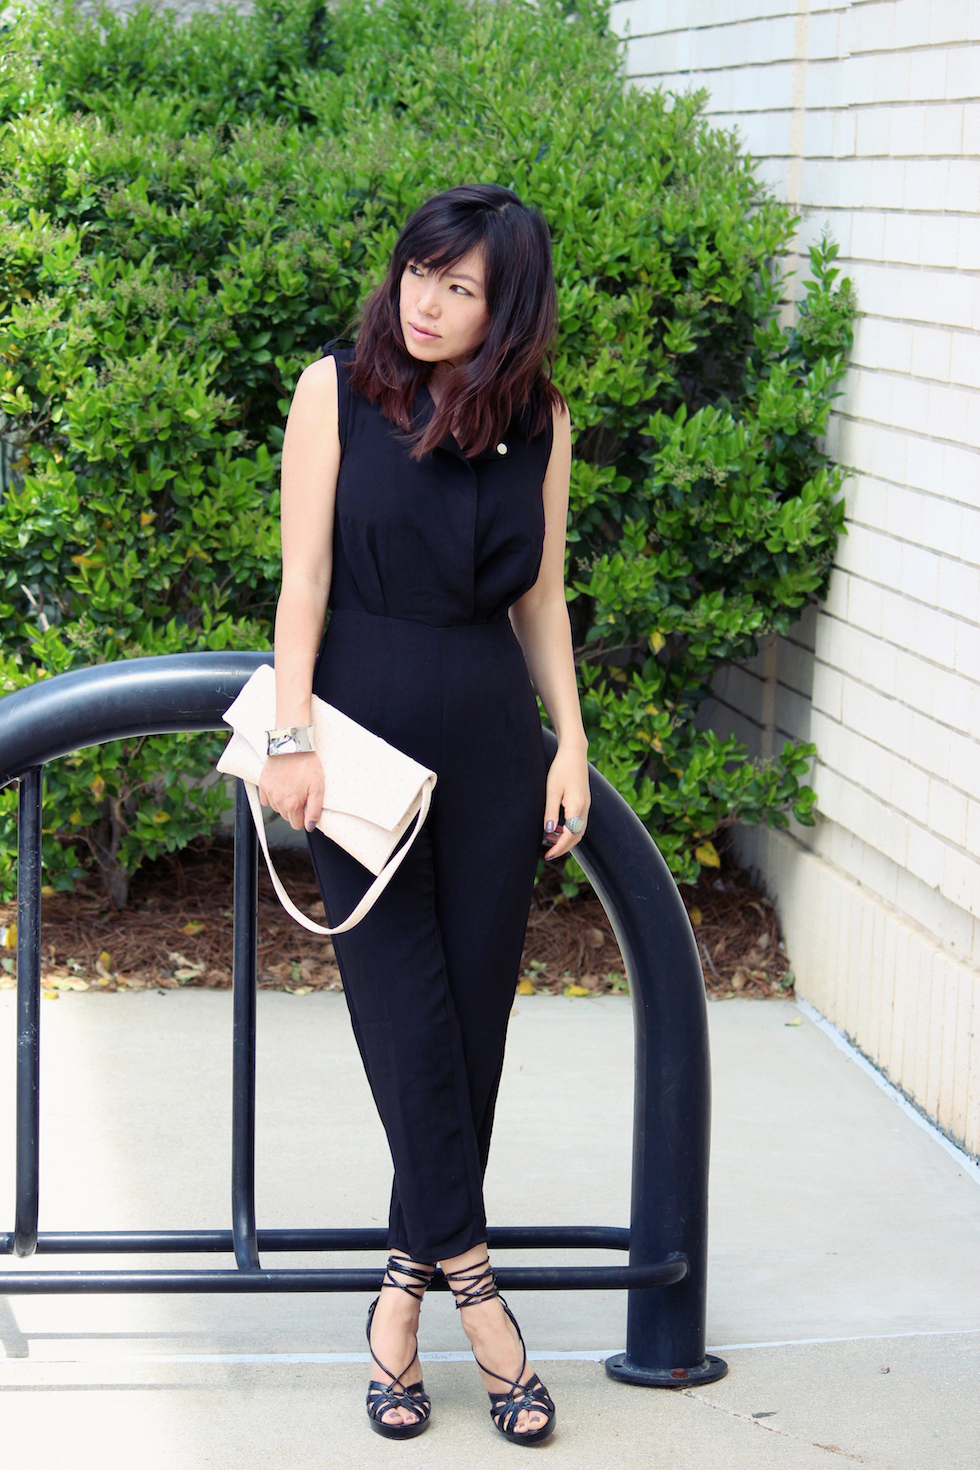 How to Wear a Jumpsuit to Work | WorkChic